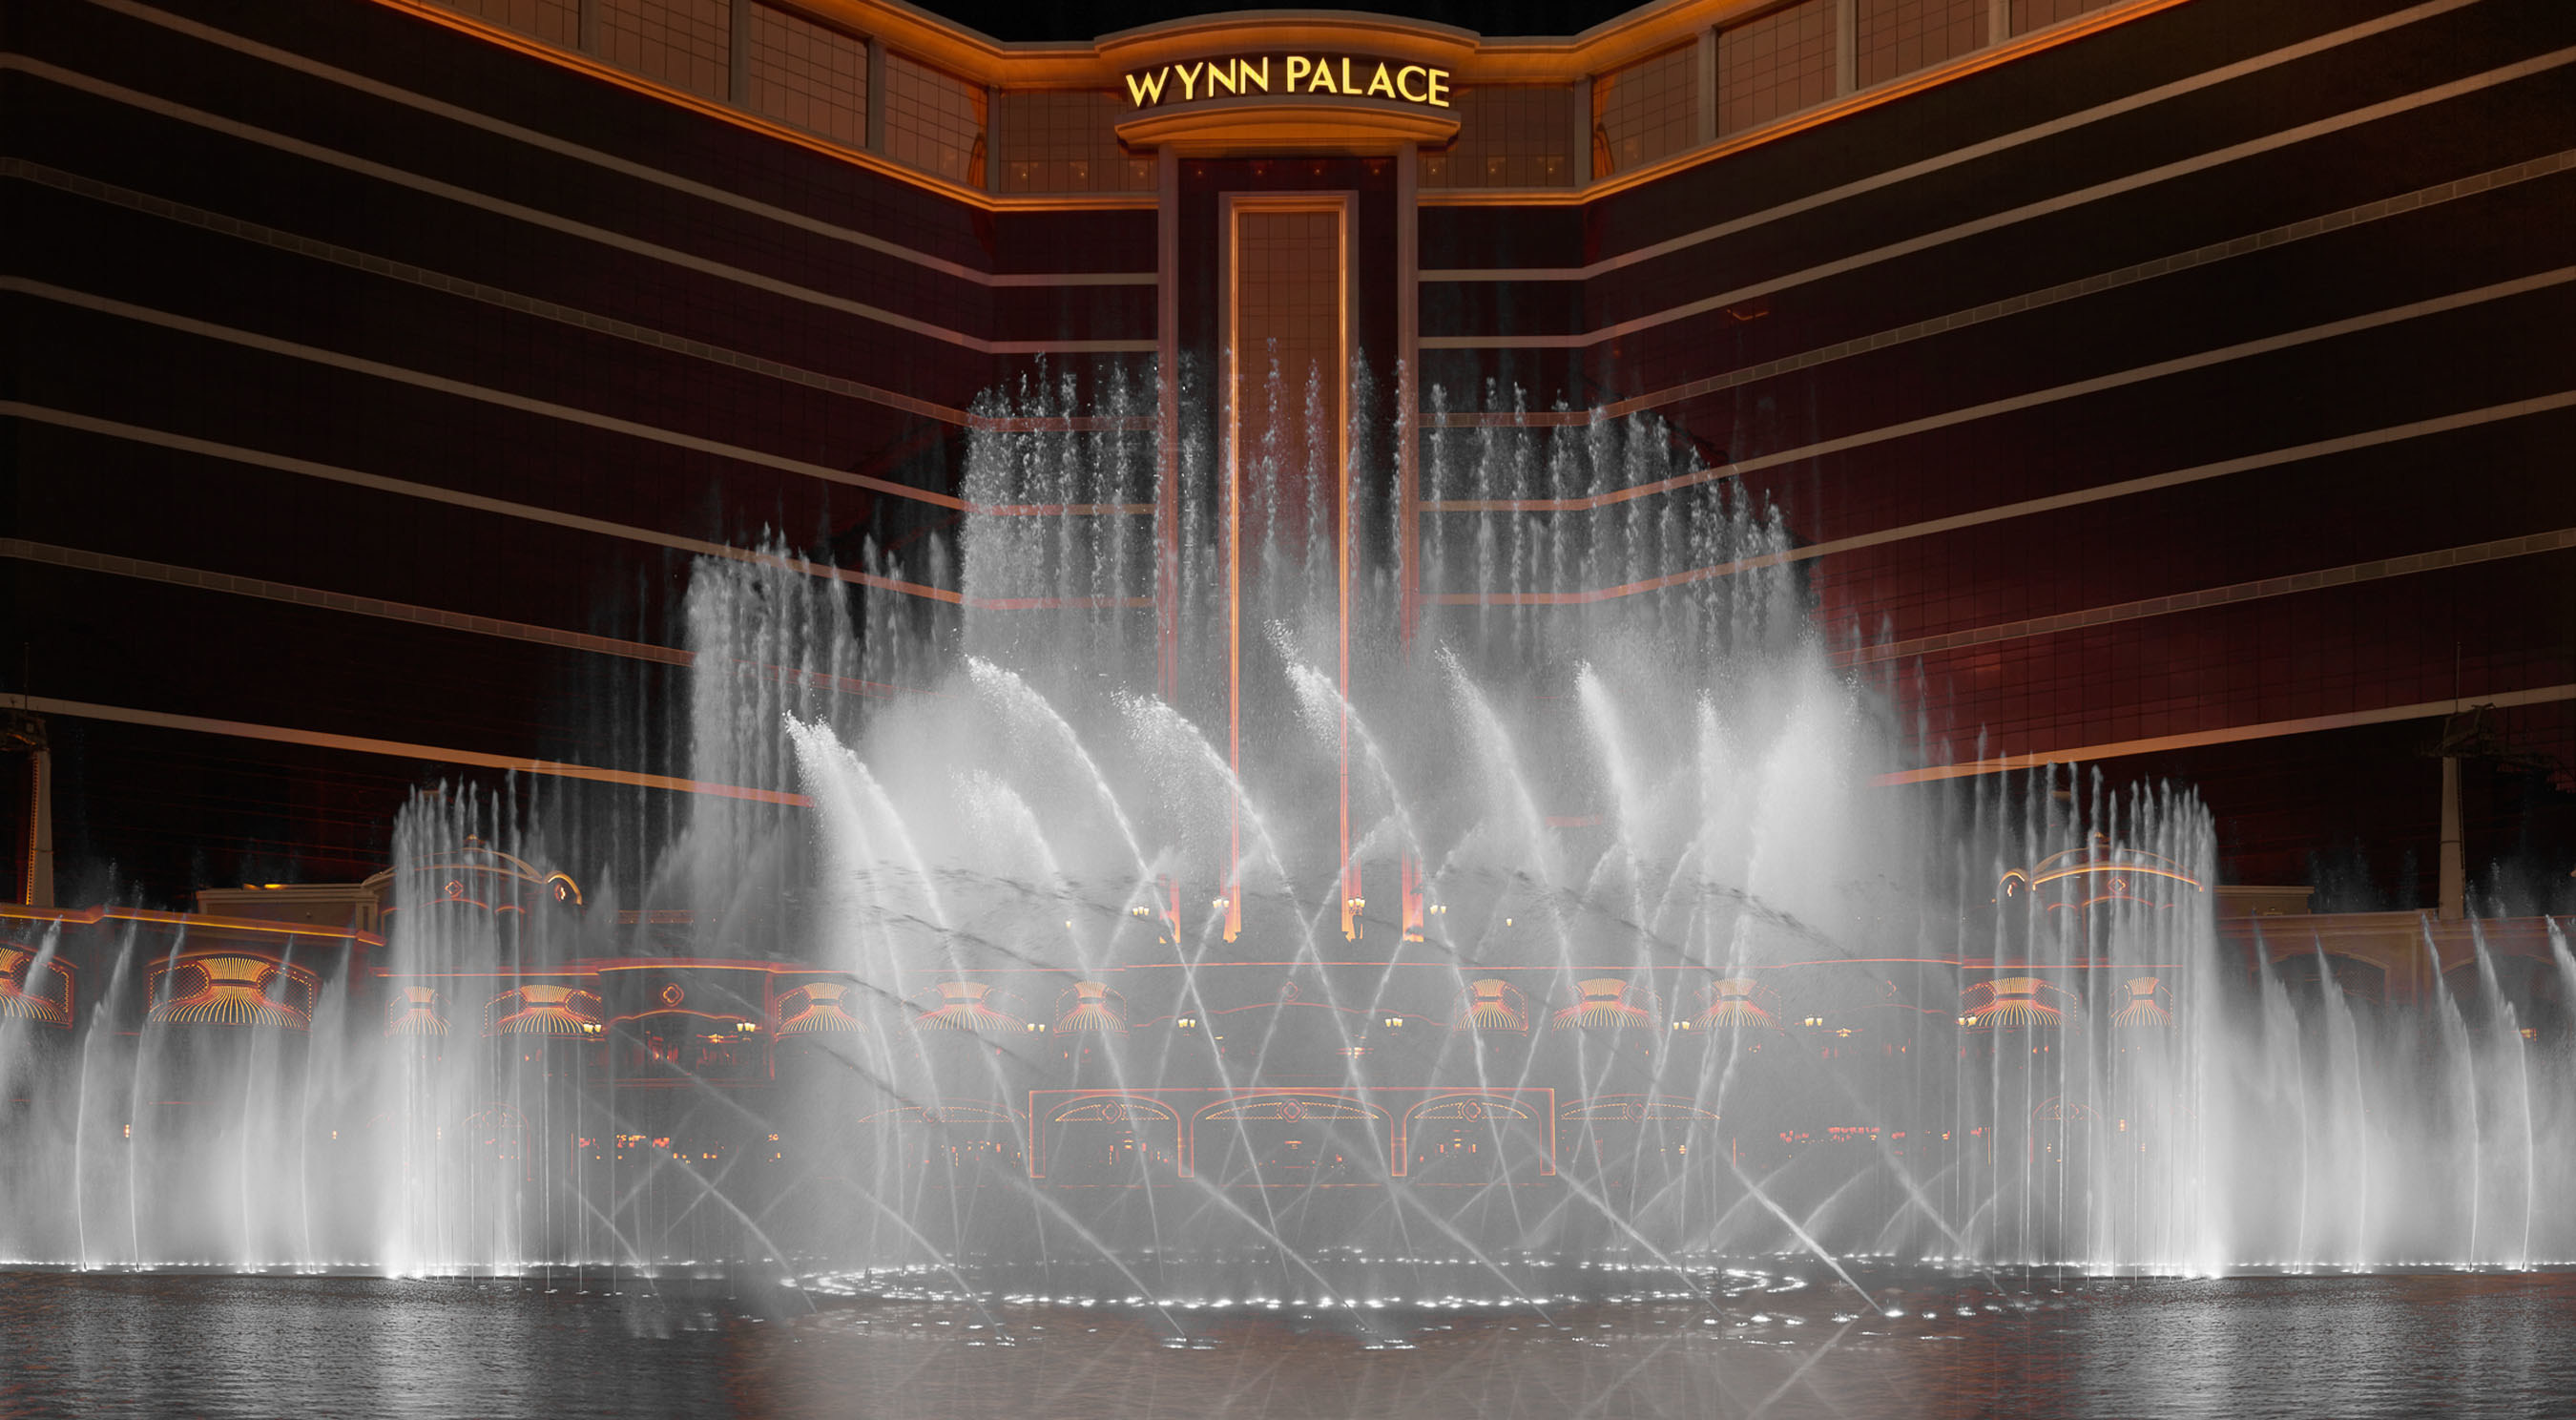 Wynn Palace, located in the heart of Cotai, Macau, officially opened to the world with a spectacular Performance Lake show choreographed to its signature song, 'Elegance'.